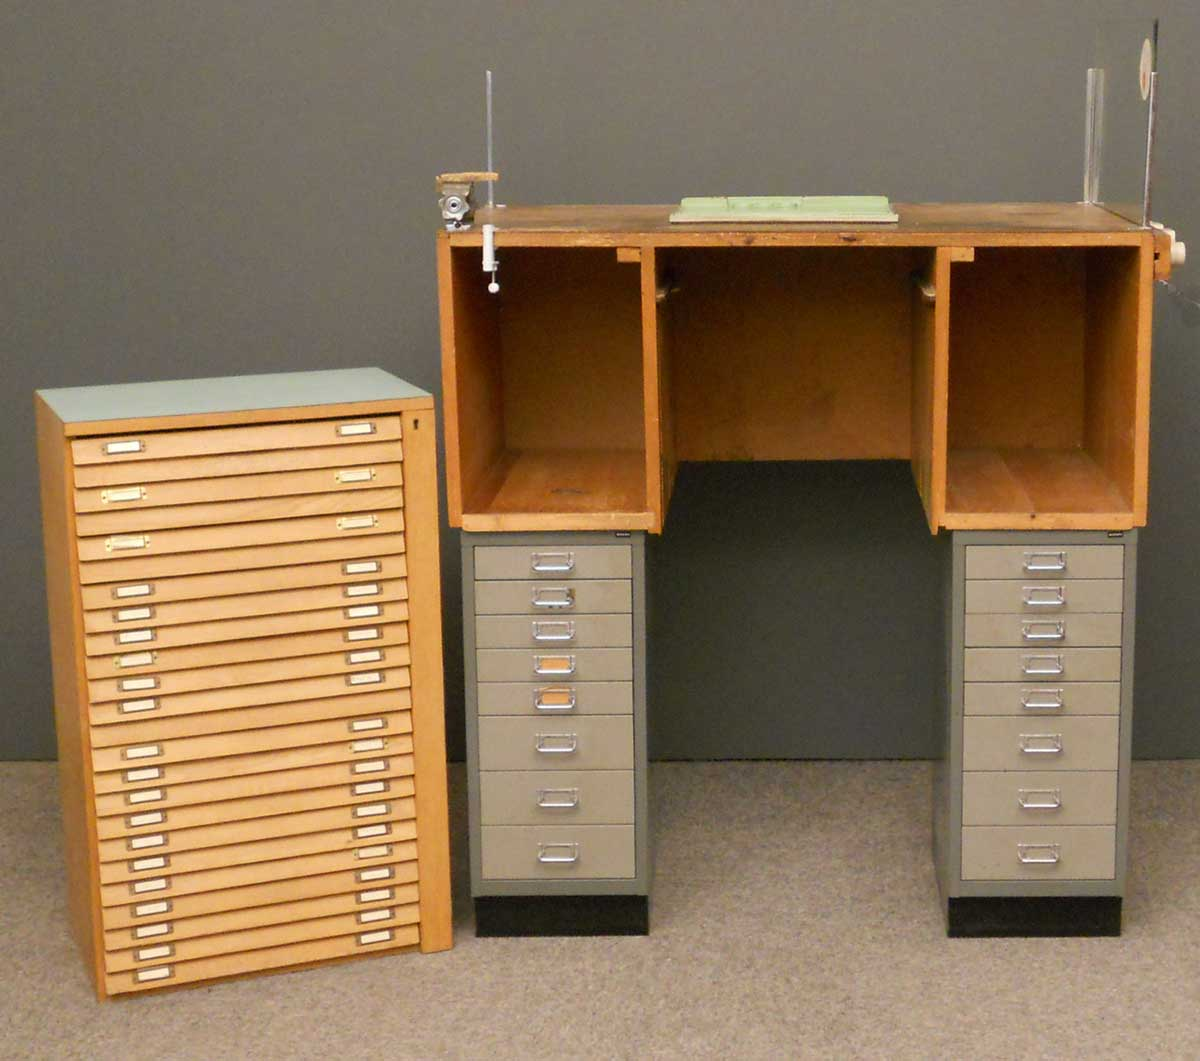 Bisley two low filing cabinets